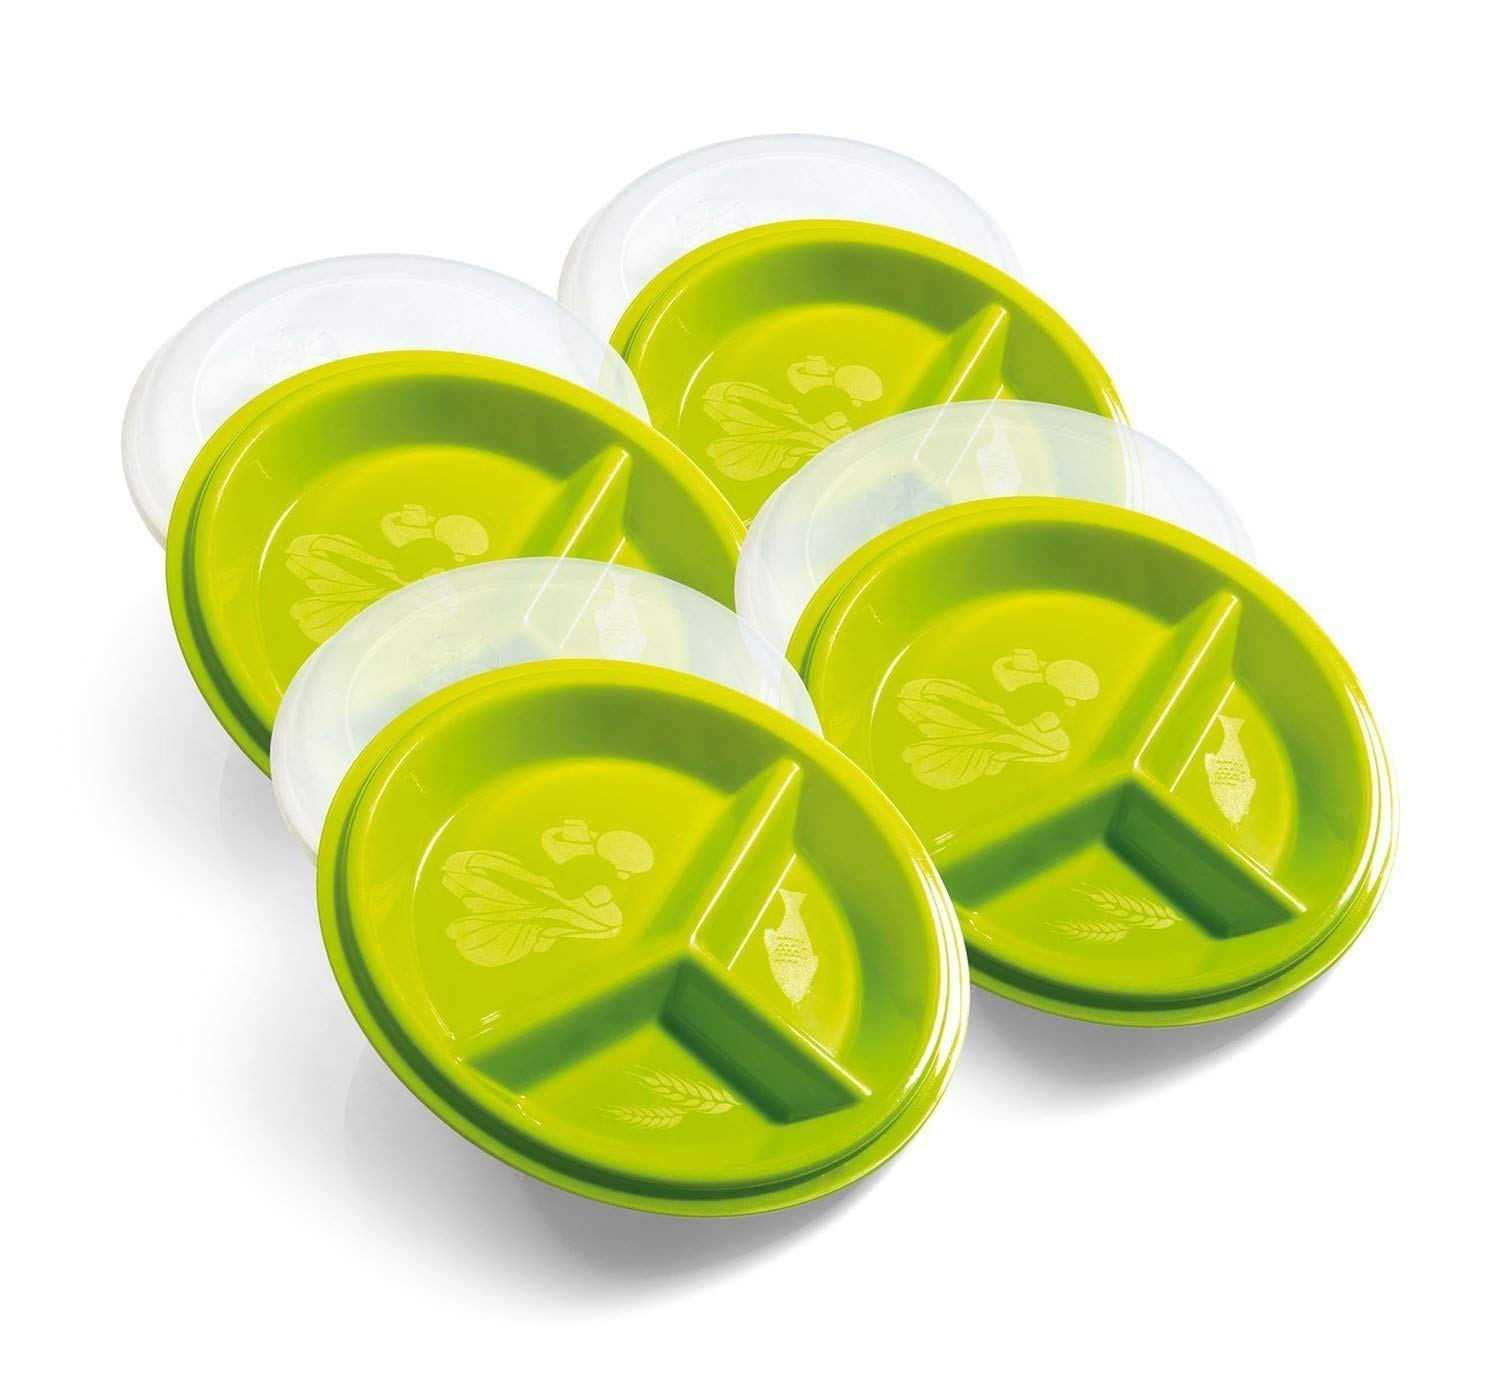 Precise Portions 2-Go Healthy Portion Control Plates, Pack of 4 – BPA-Free 3-Section Plate with Leak-Proof Lids, Dishwasher, Microwave Safe, Helps Manage/Lose Weight, Metabolism, Blood Sugar